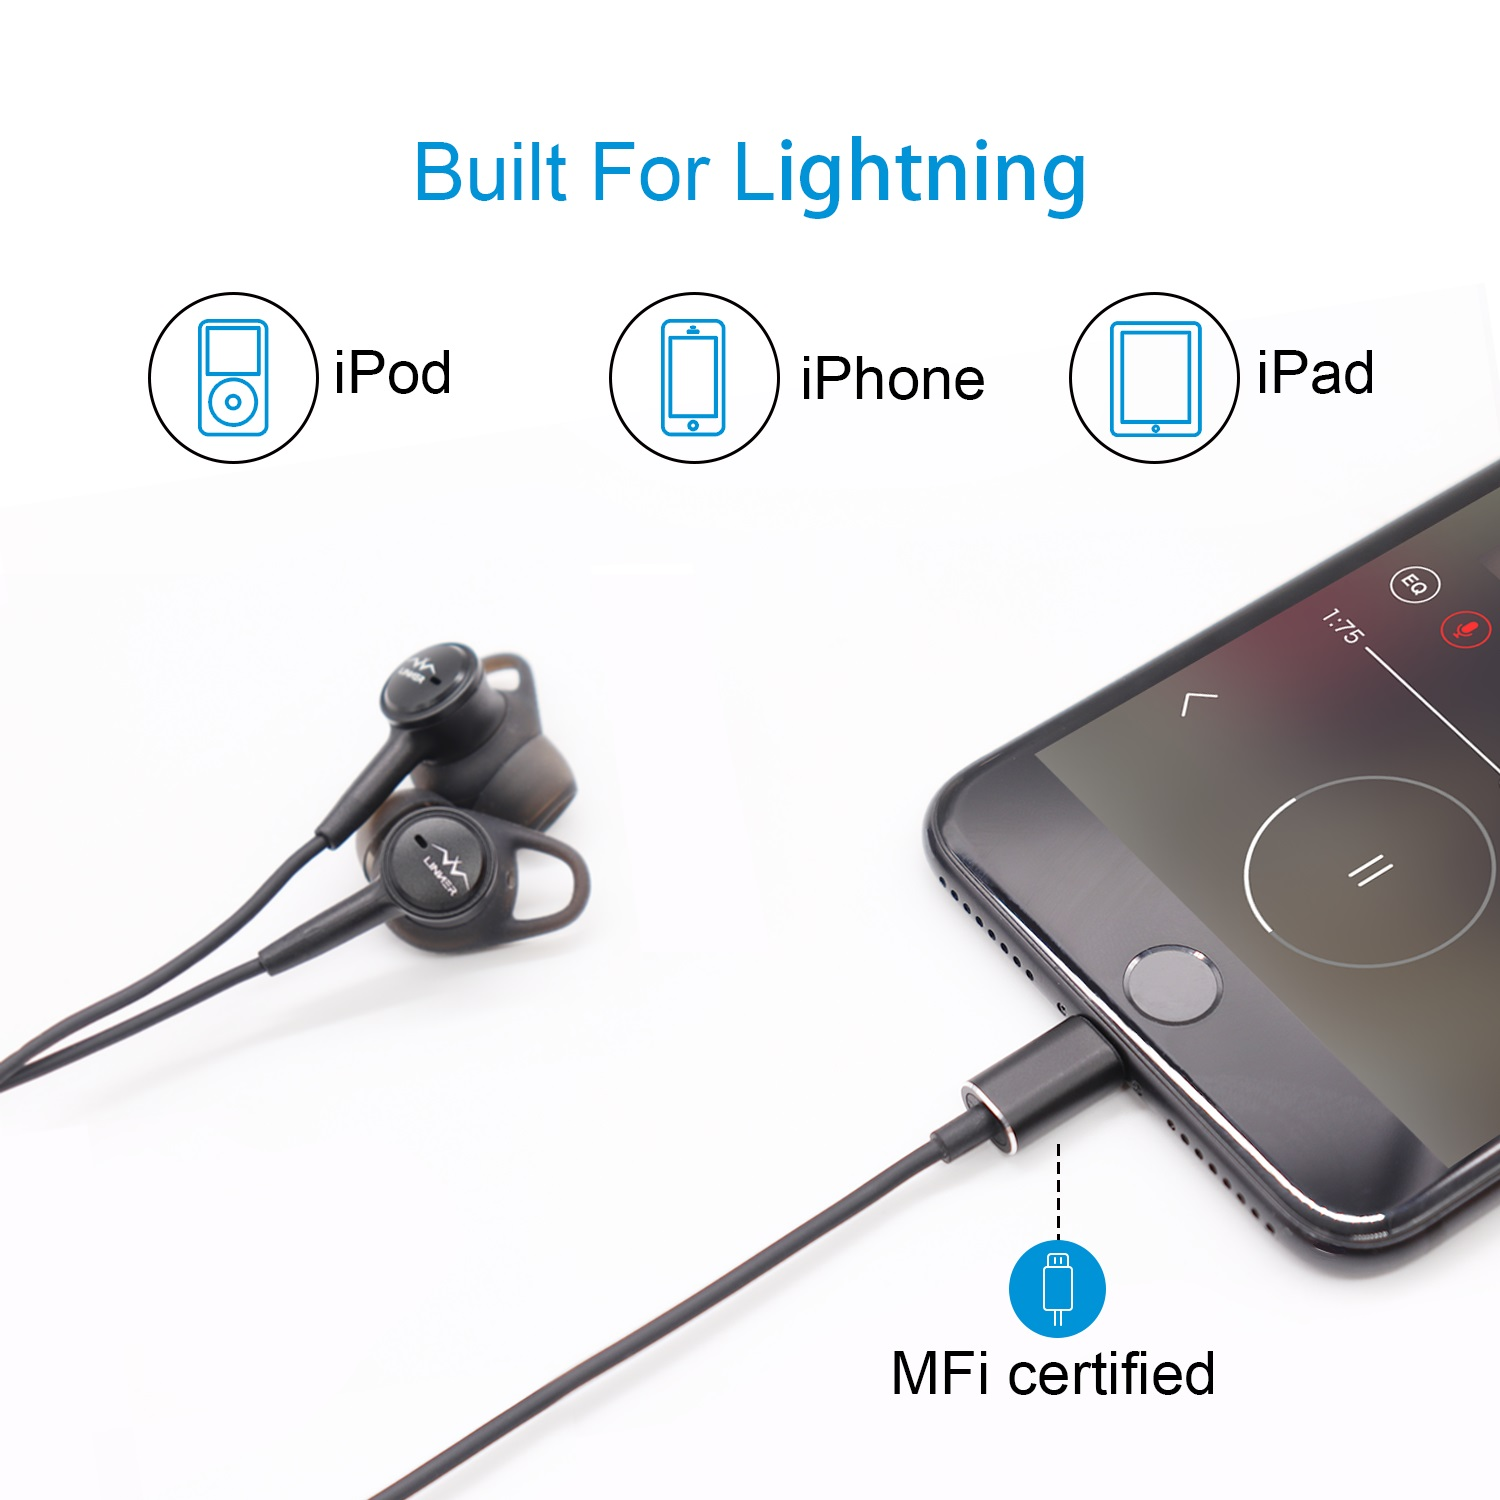 Powered by iPhone - Provided Apple MFi Certified. Powered by iPhone. Don't have to worry that a bulky battery or recharging will slow you down, simply plug in and go